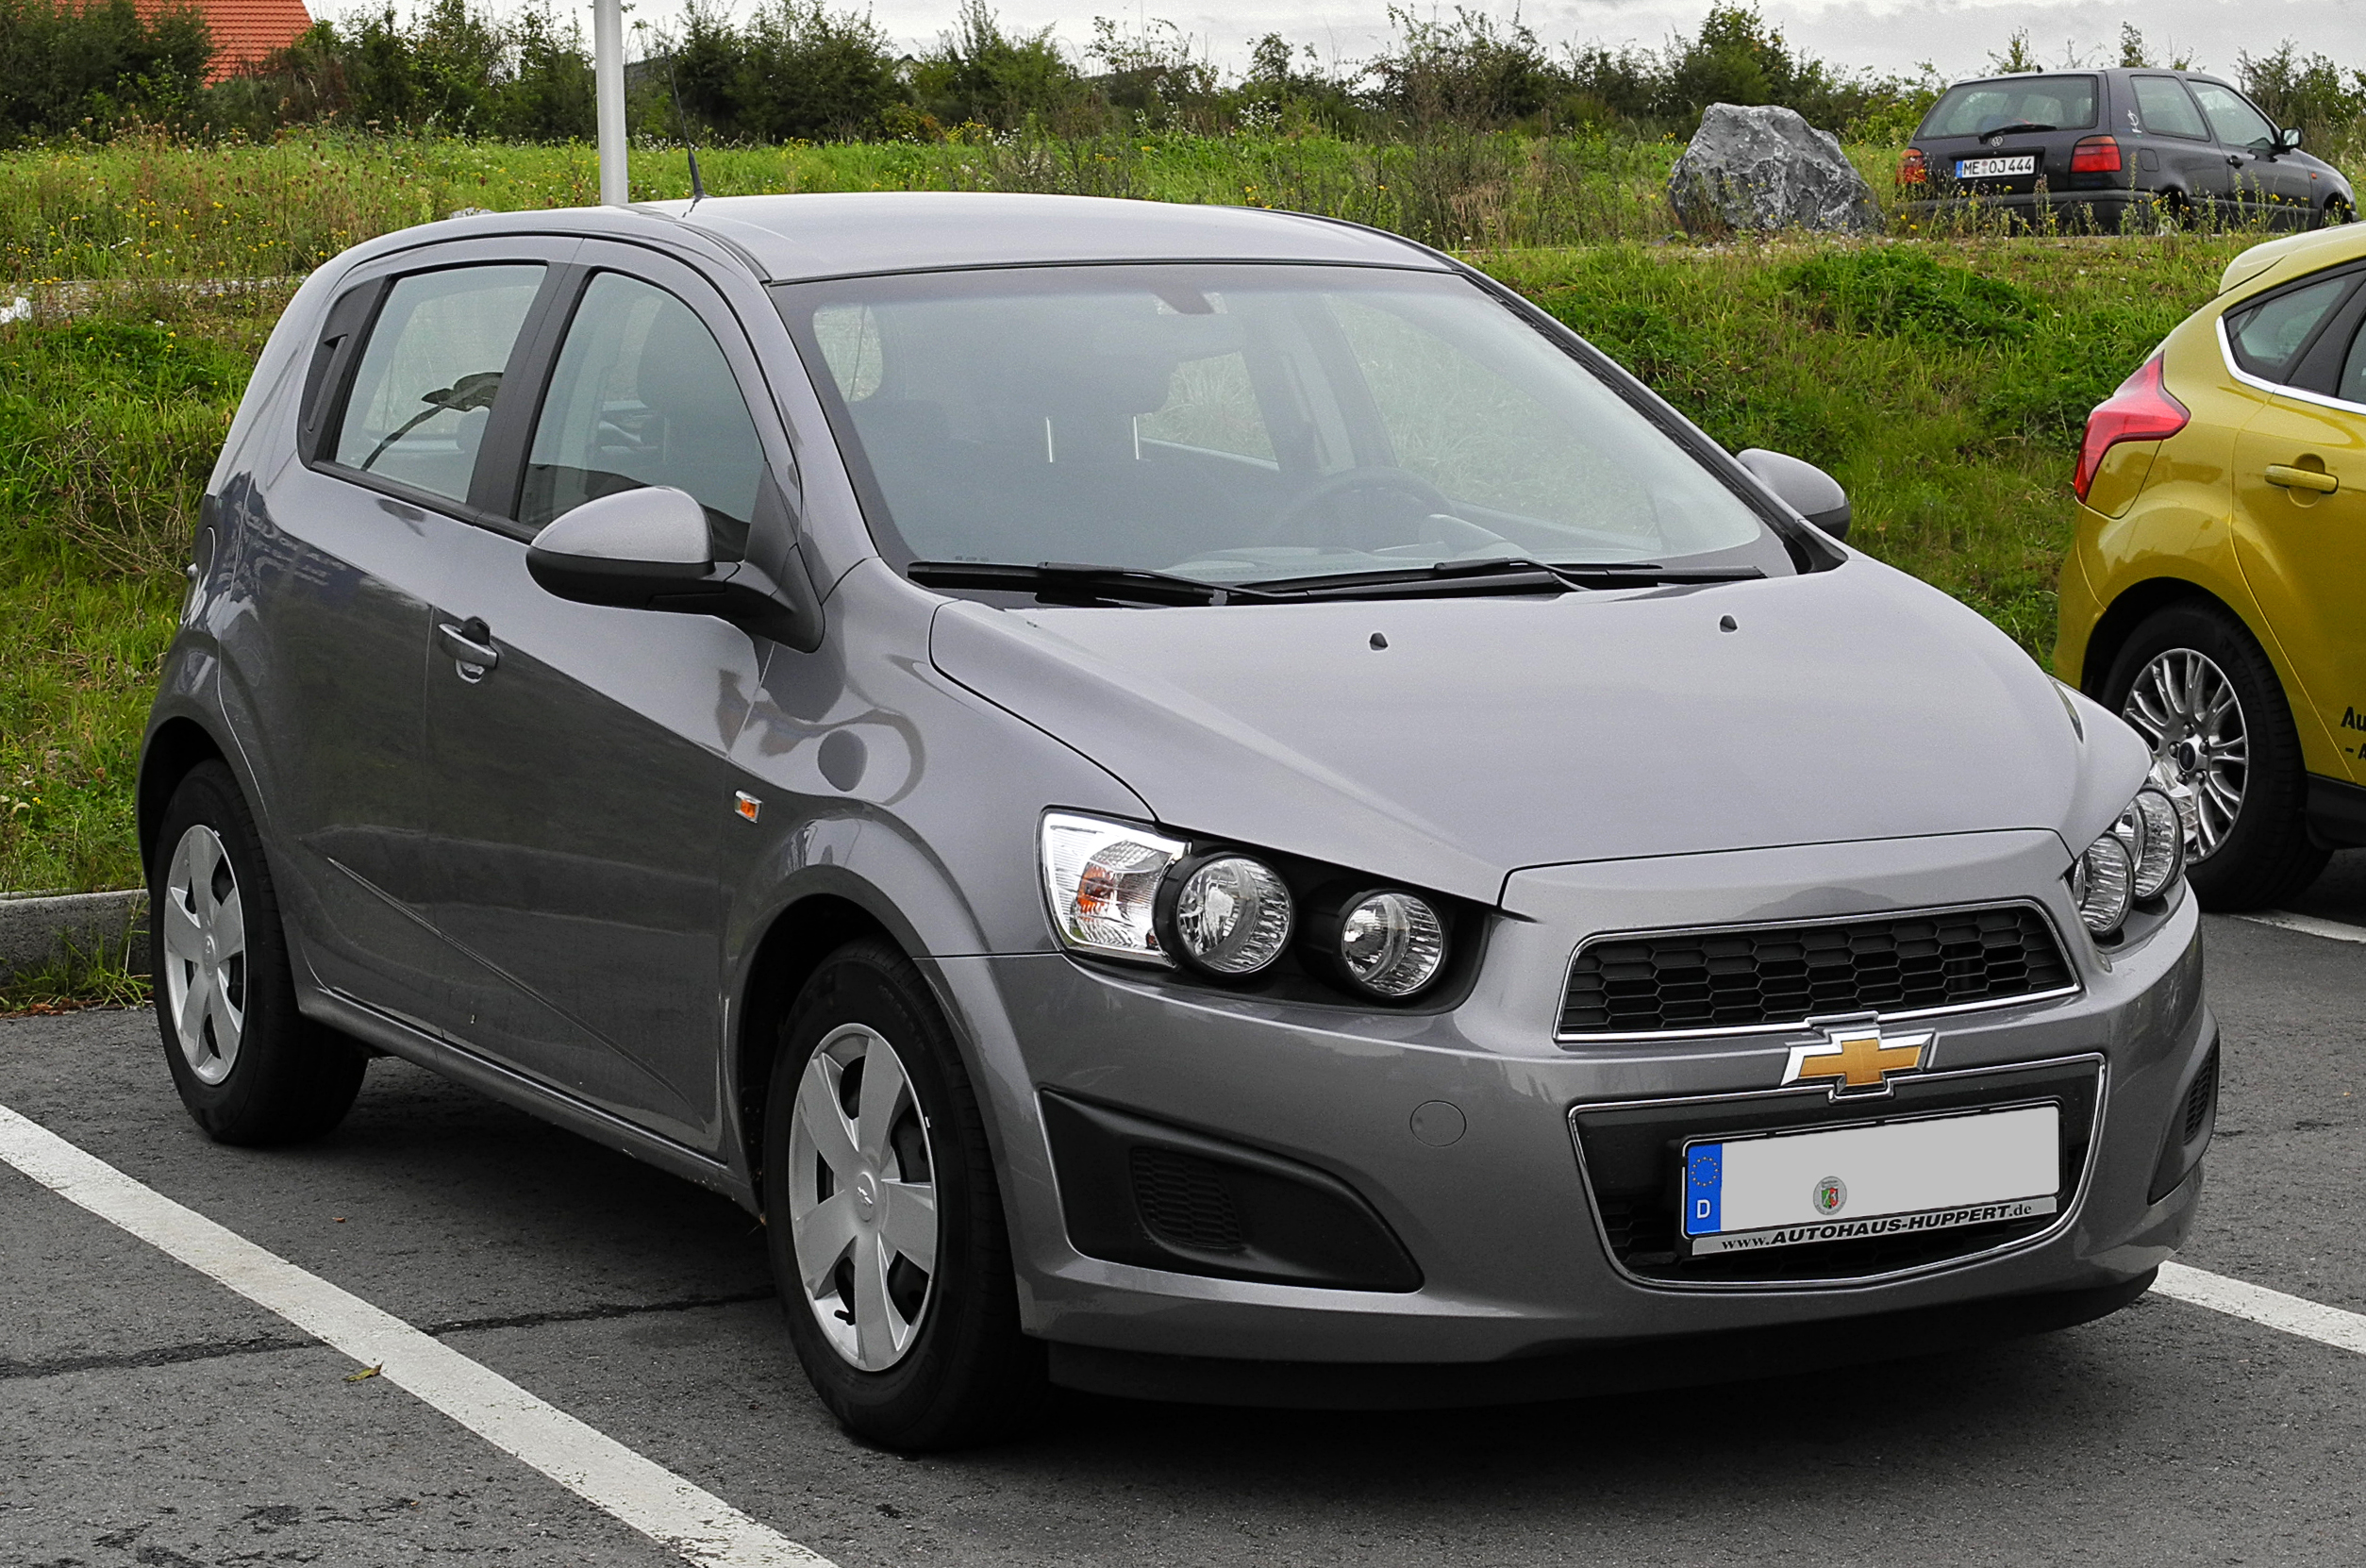 chevrolet aveo wallpaper #7